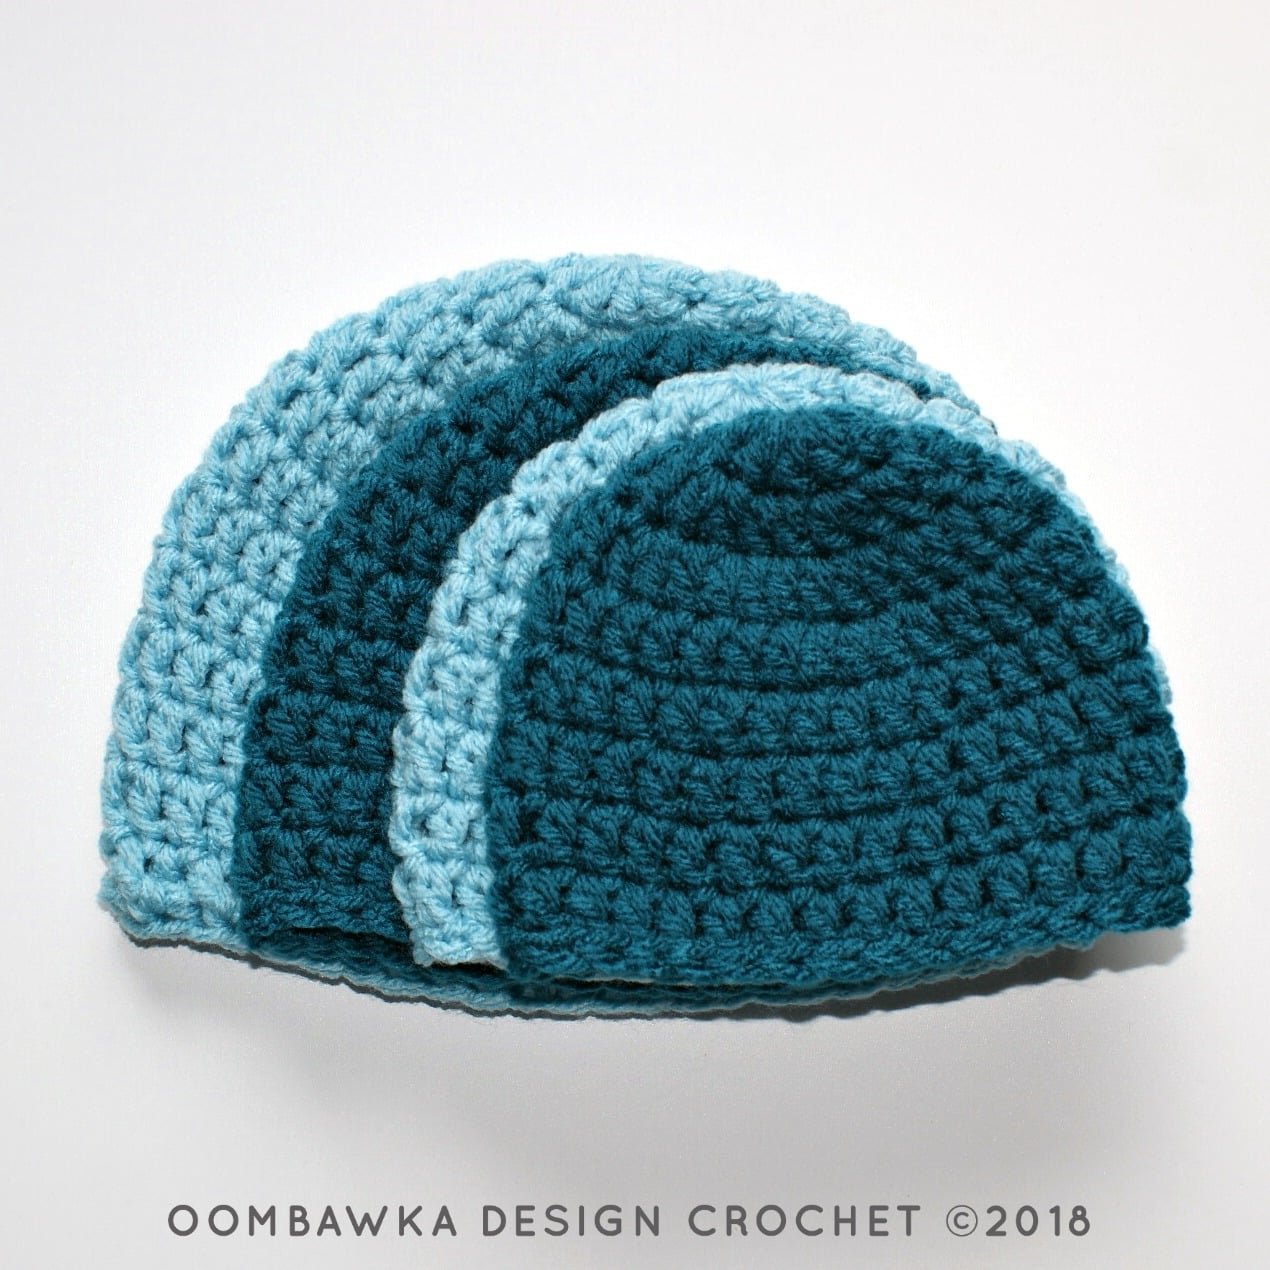 64e5af33467 Simple Double Crochet Hat Pattern. • Oombawka Design Crochet